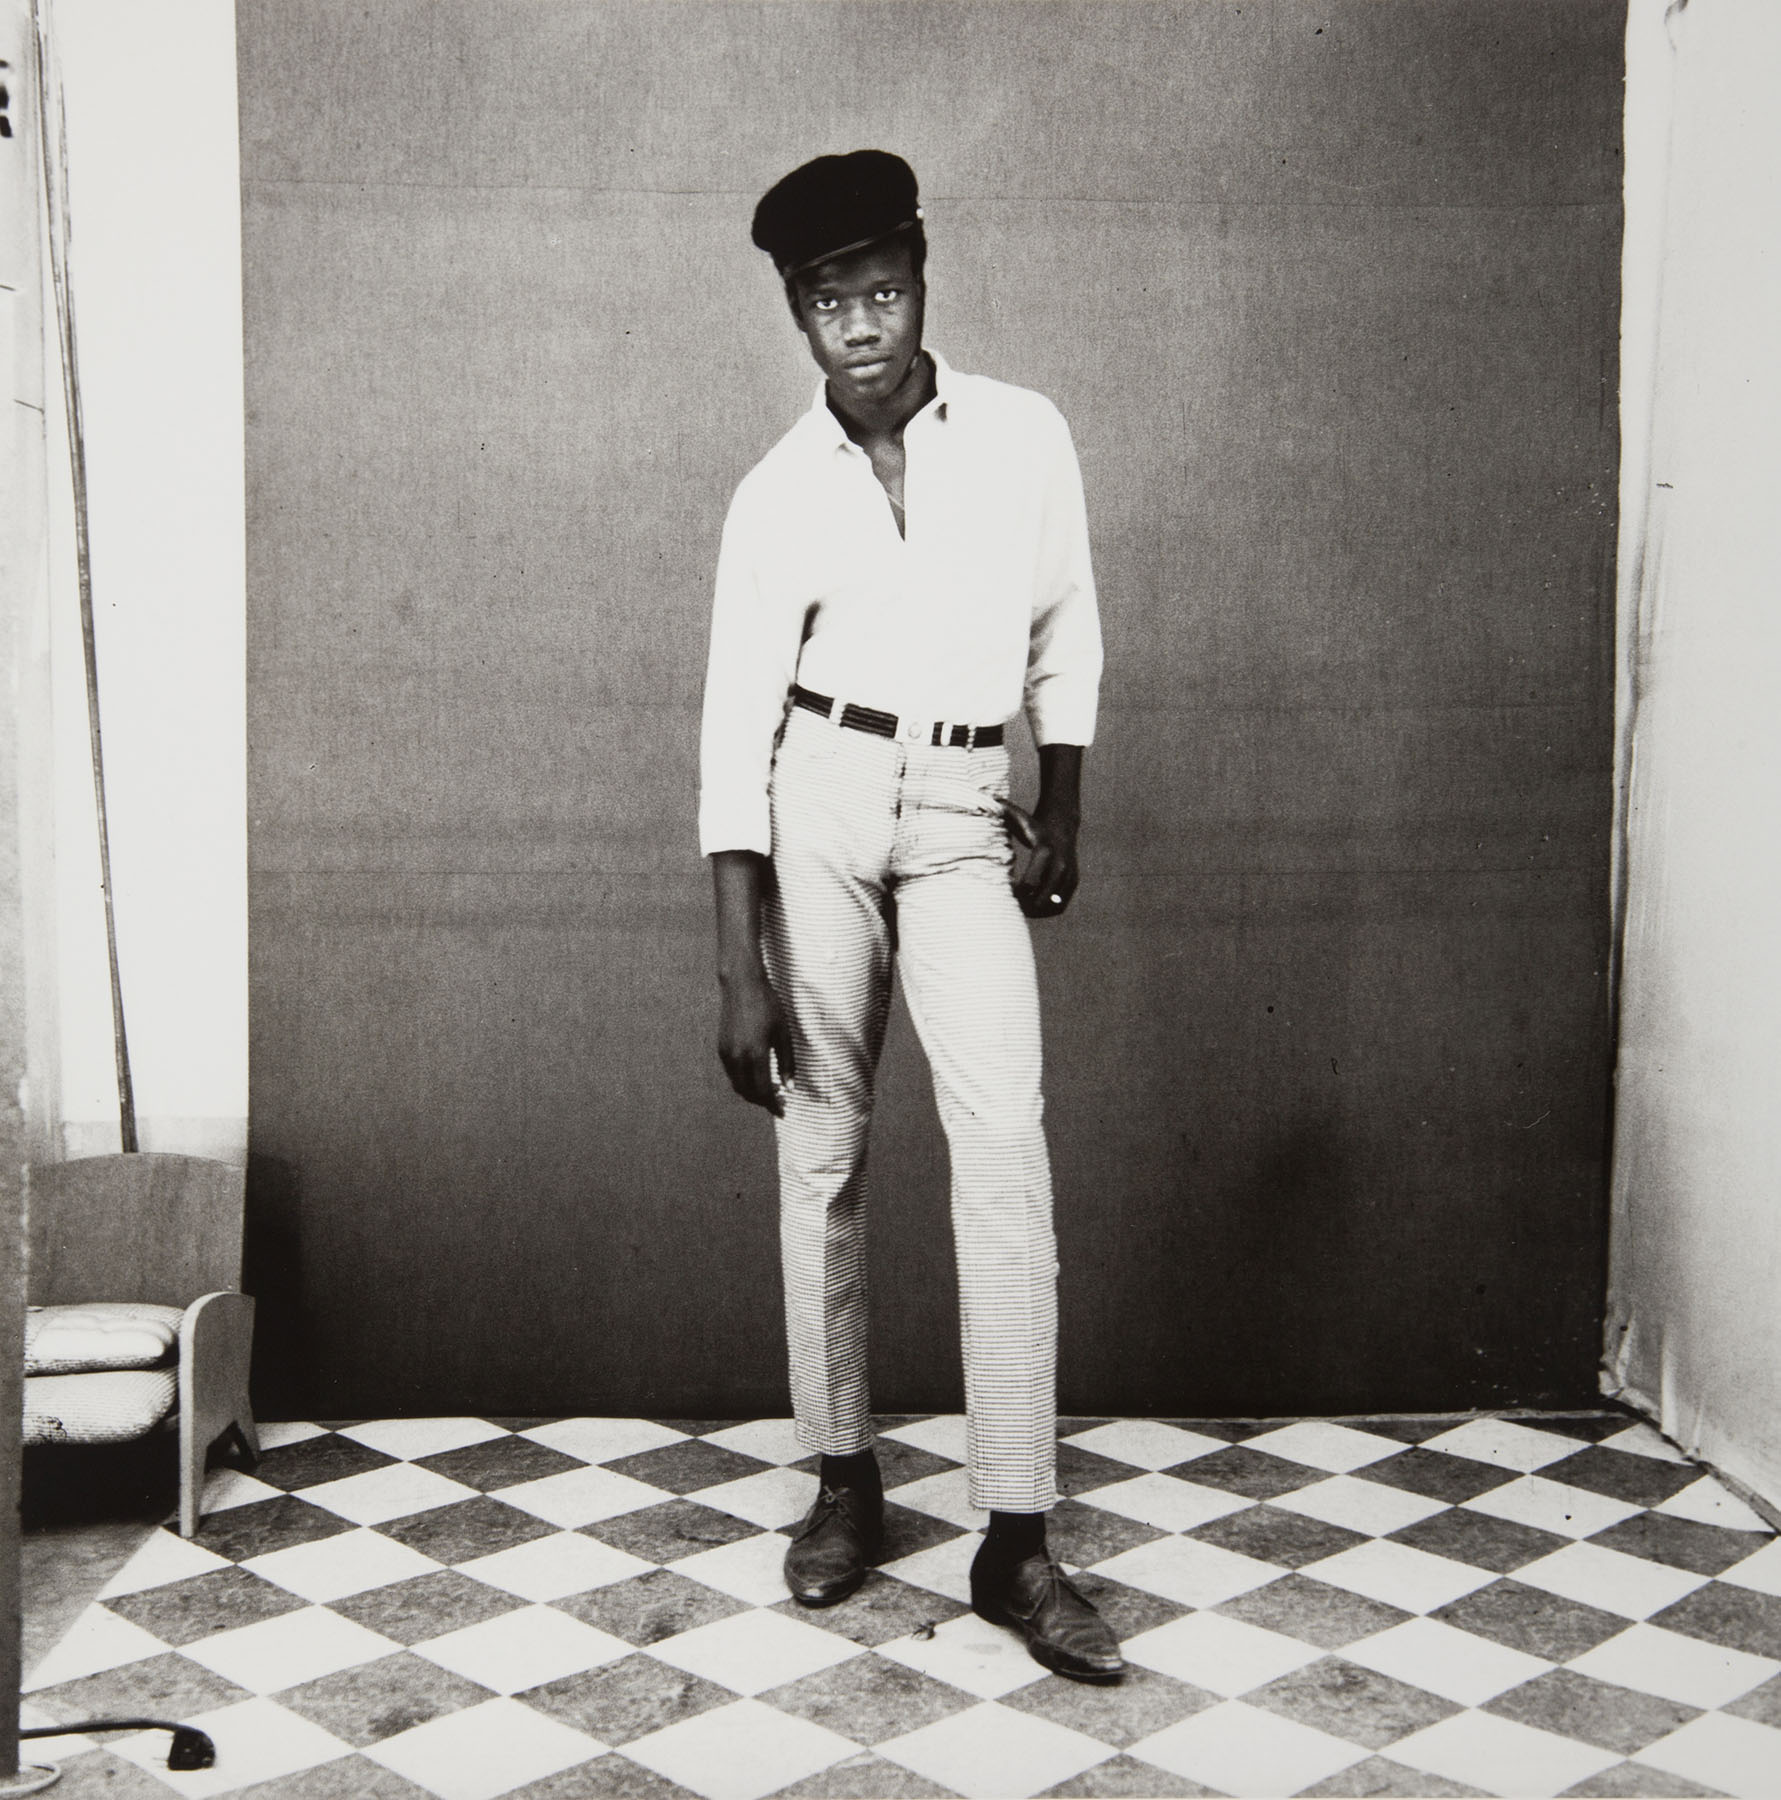 Malick Sidibé, The Pretend Sailor, 1967. Gelatin silver print. © Malick Sidibé / Gwinzegal / diChroma photography